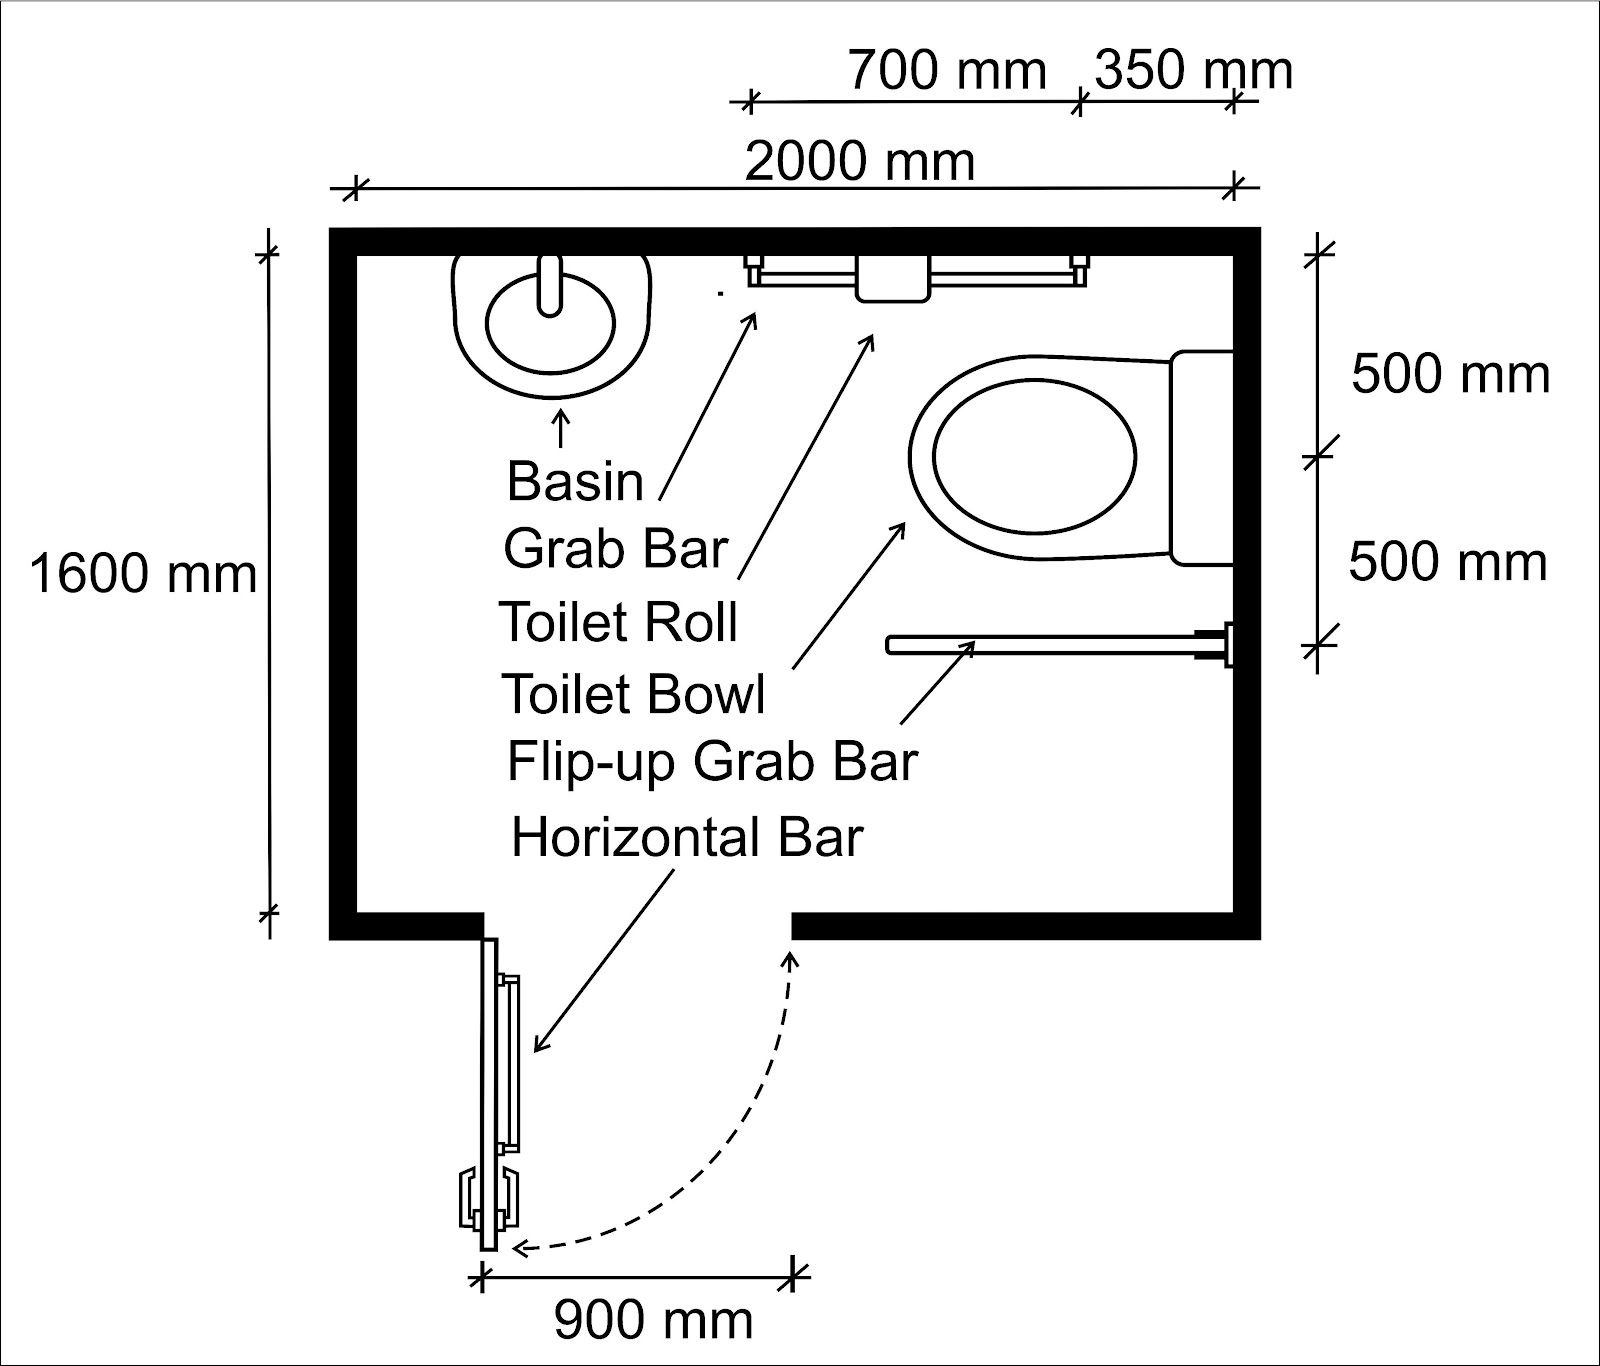 Extrêmement Wheelchair Access Penang (wapenang): Toilet (WC) For Disabled People OA14